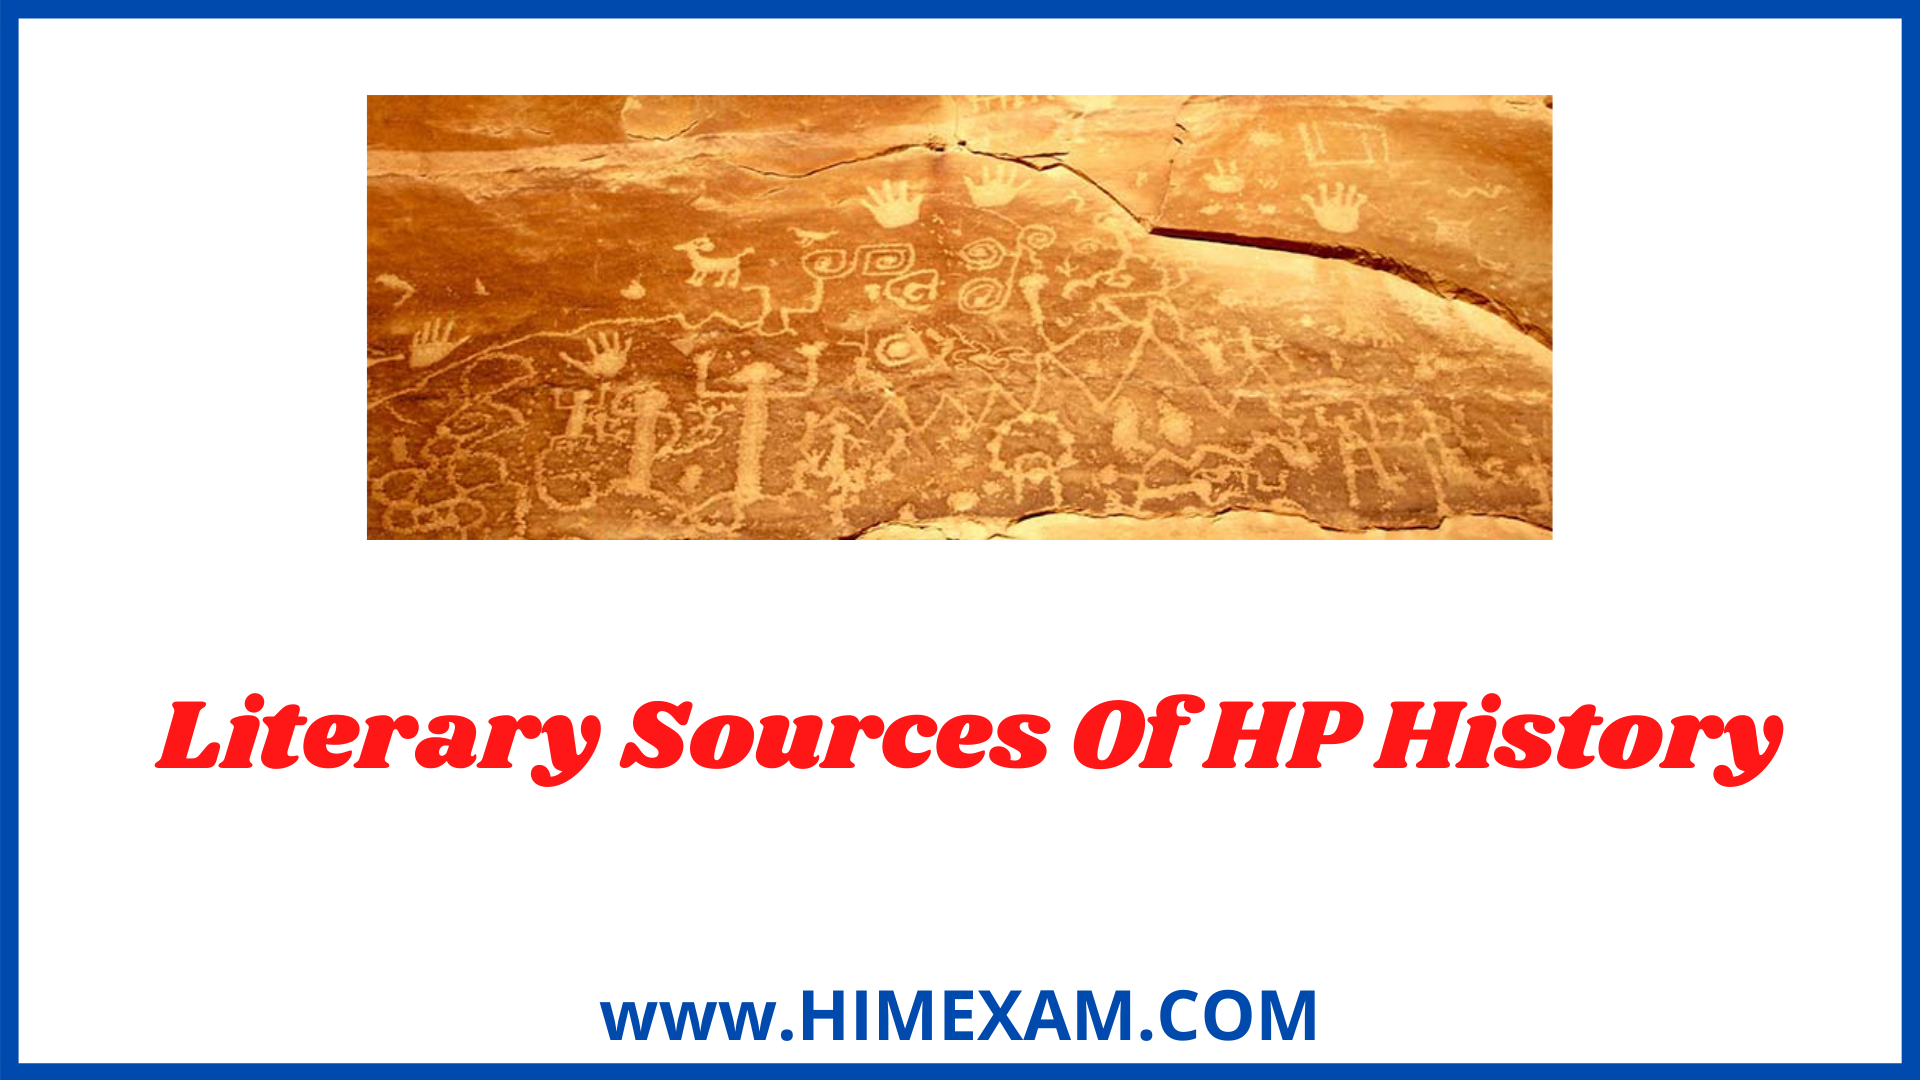 Literary Sources Of HP History